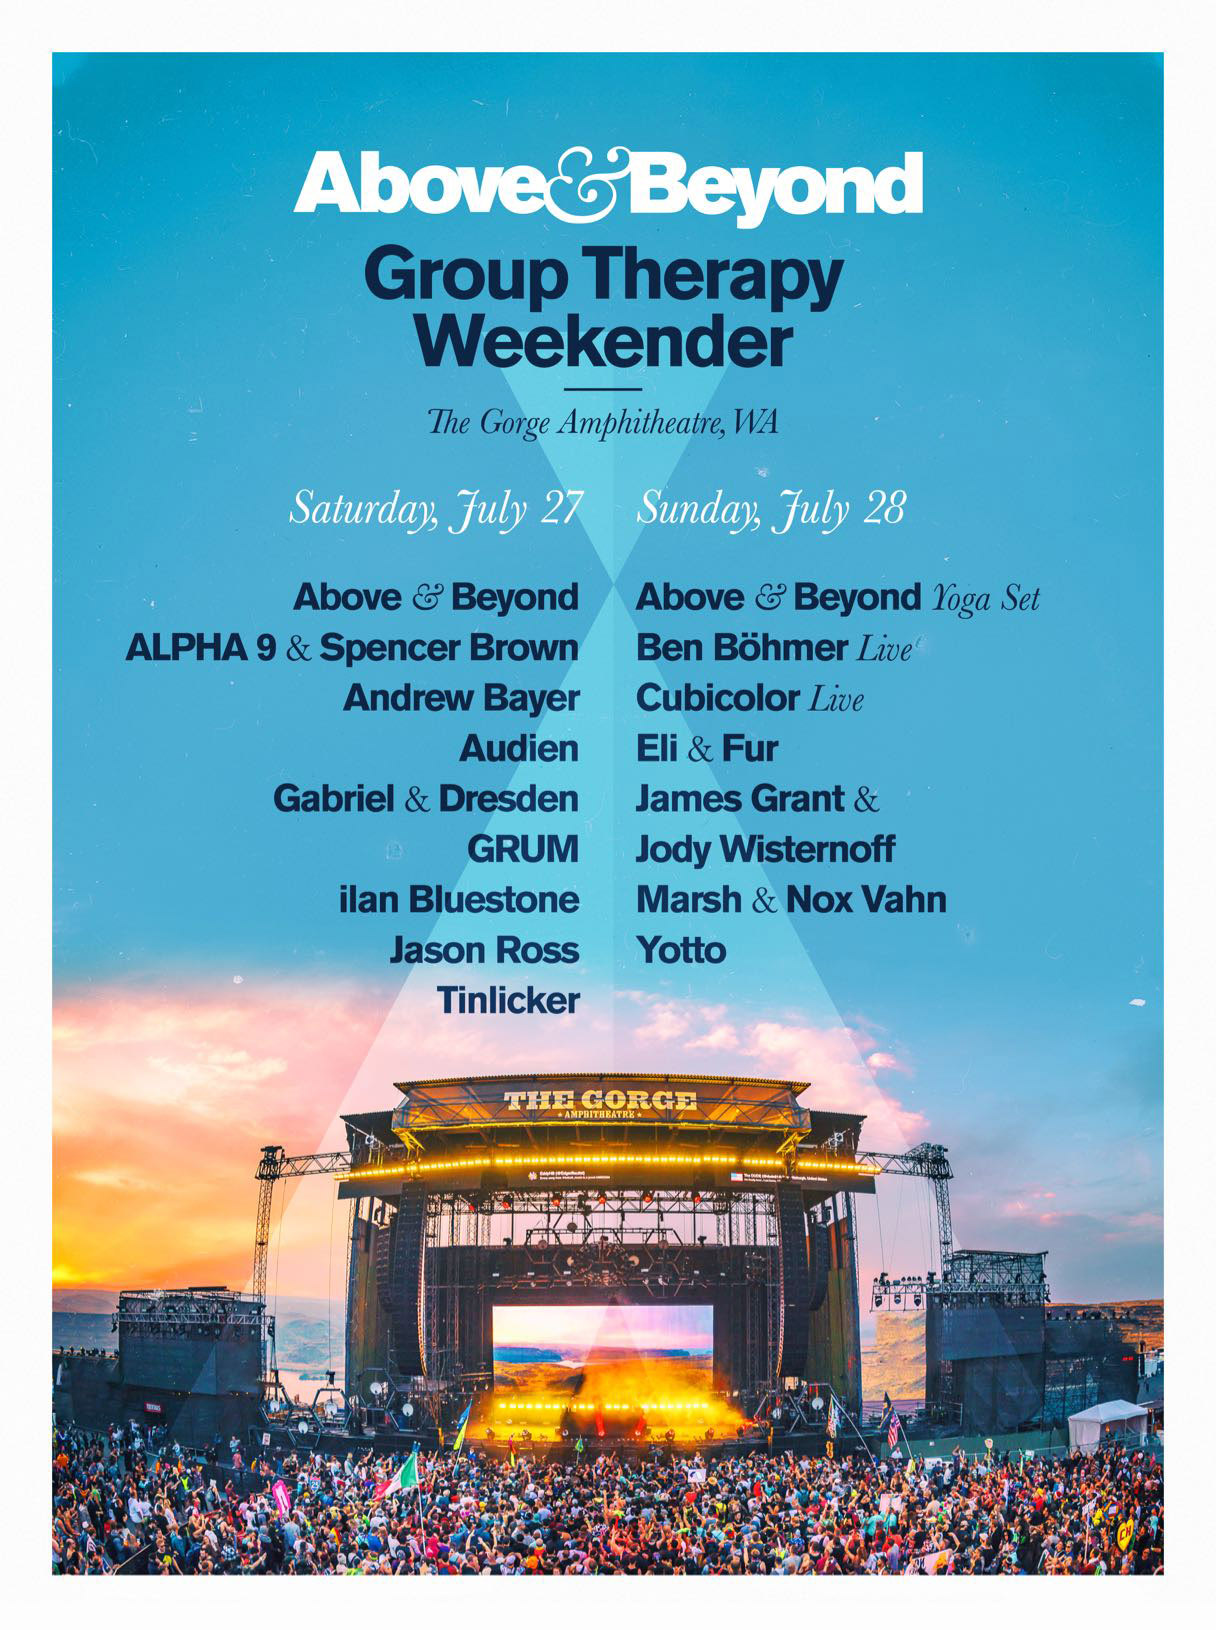 Group Therapy Weekender